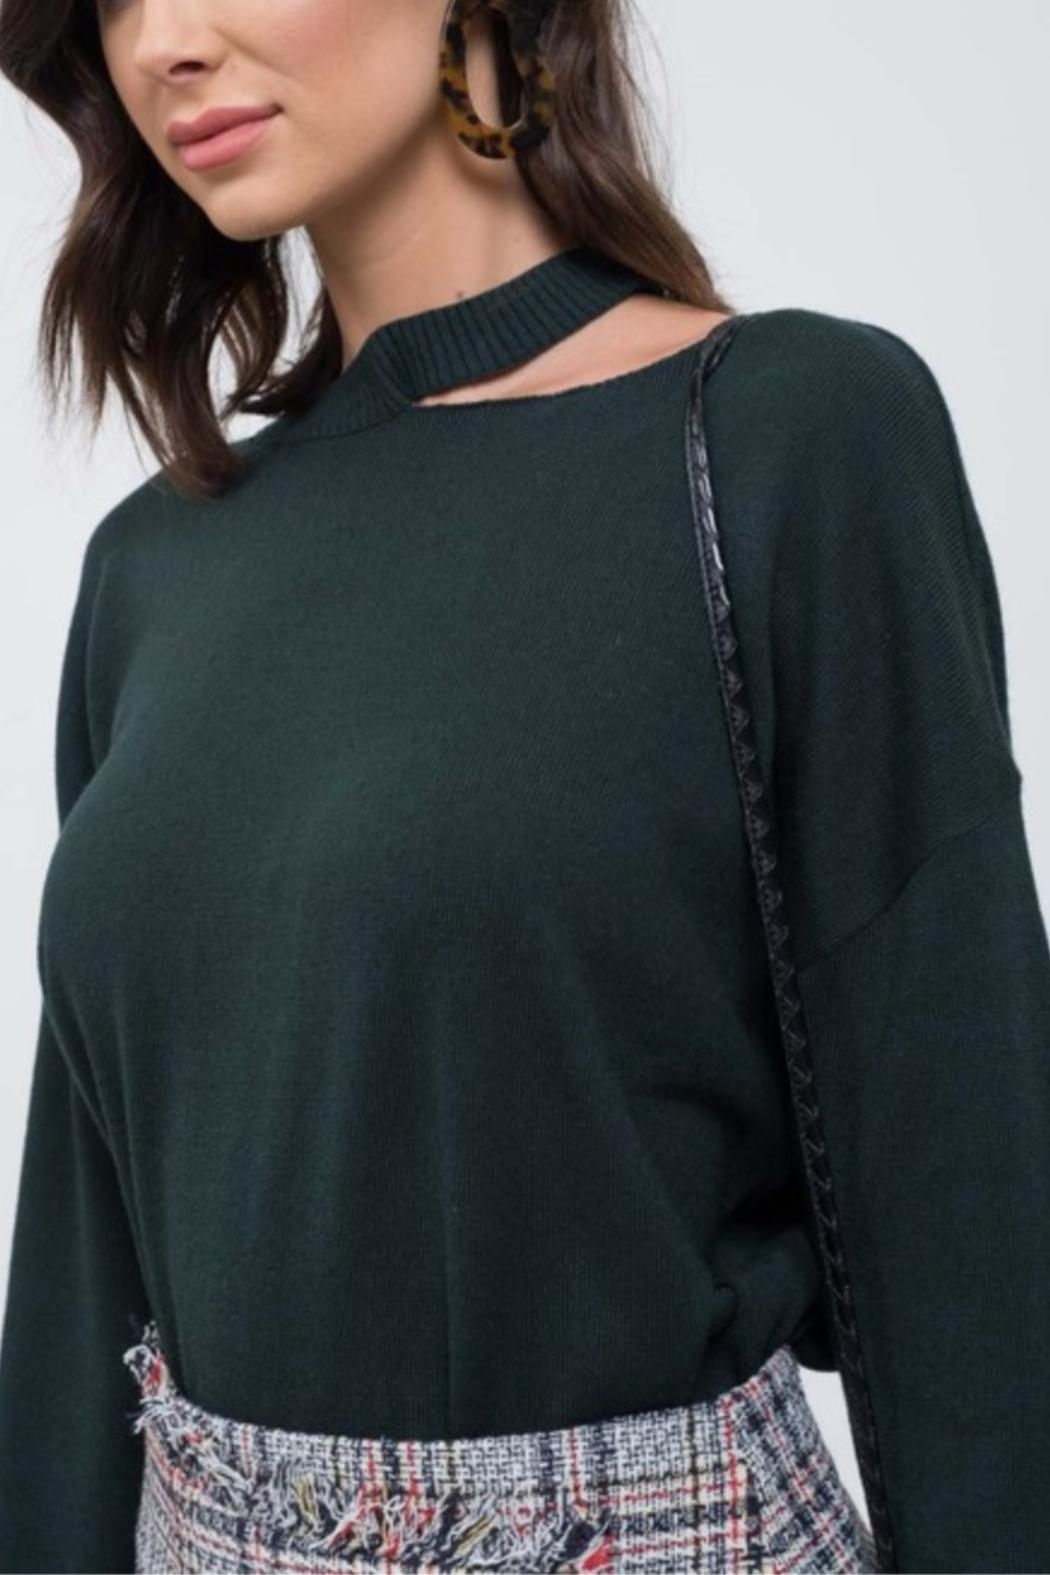 EVIDNT Cut-Out Green Sweater - Front Full Image